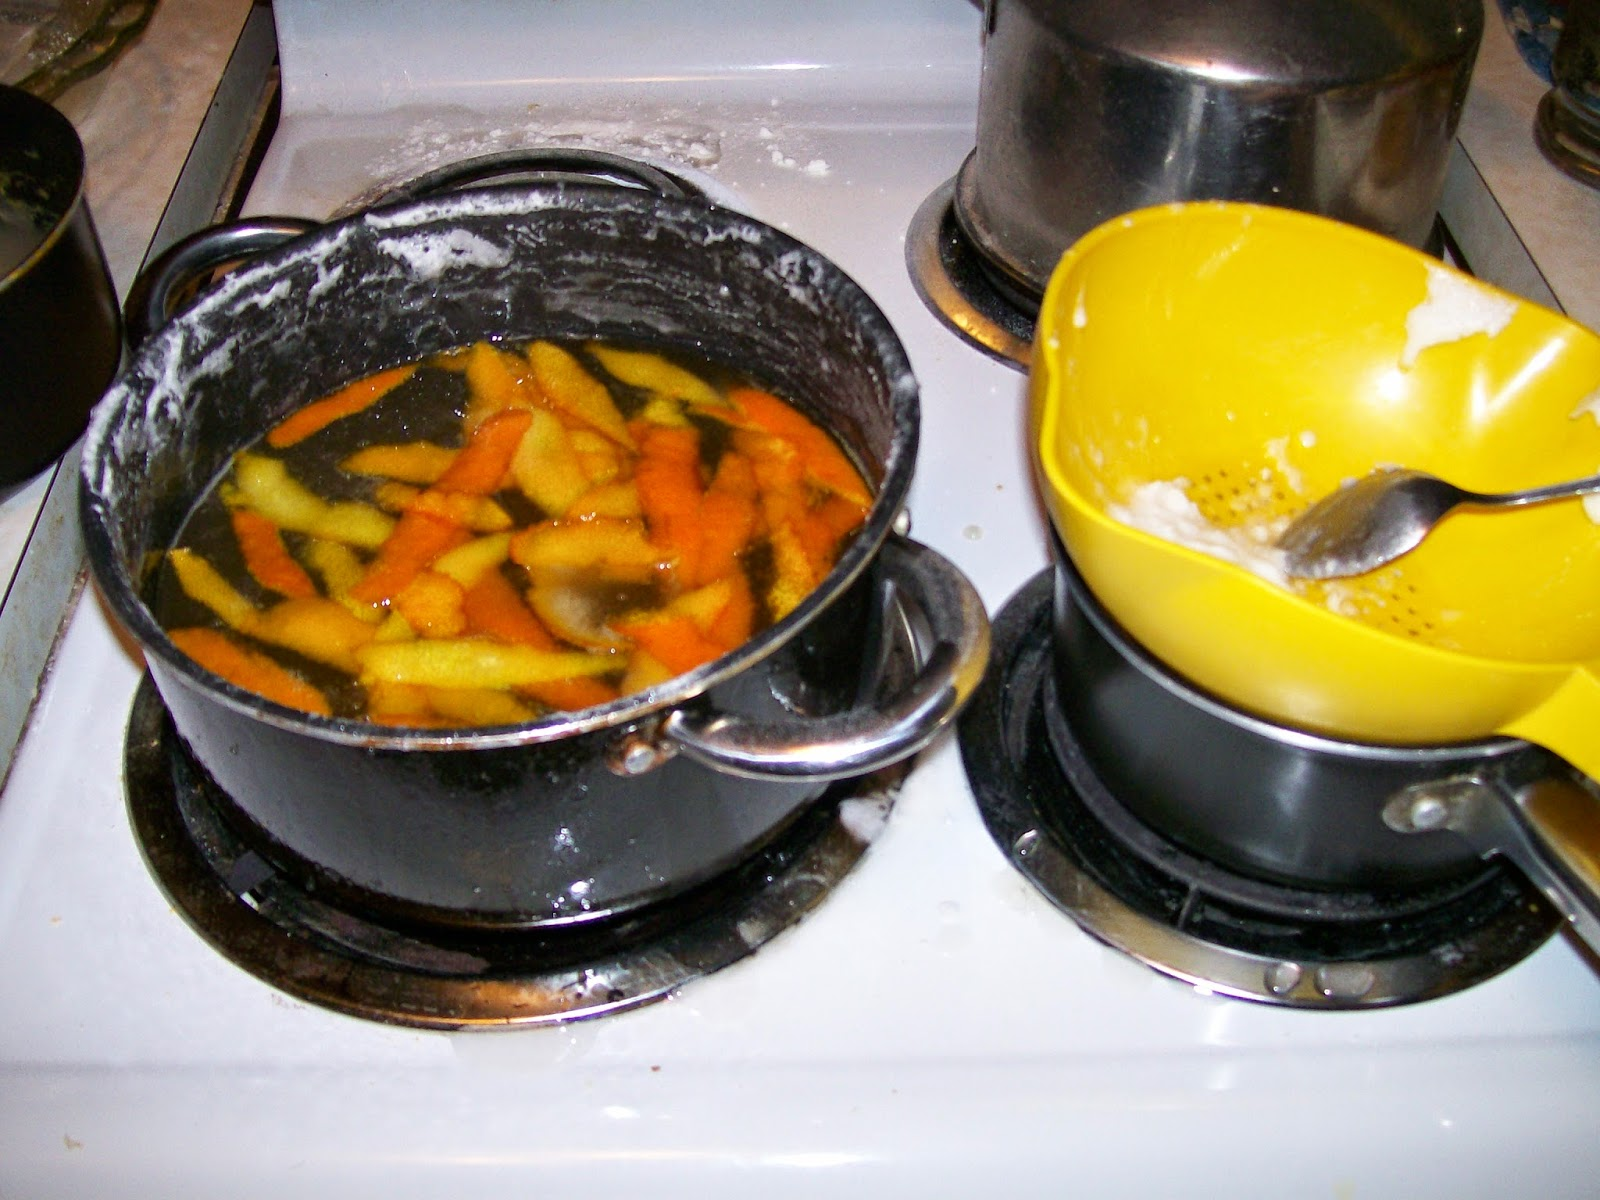 Orange peel in clarified sugar syrup for making fruit ices.